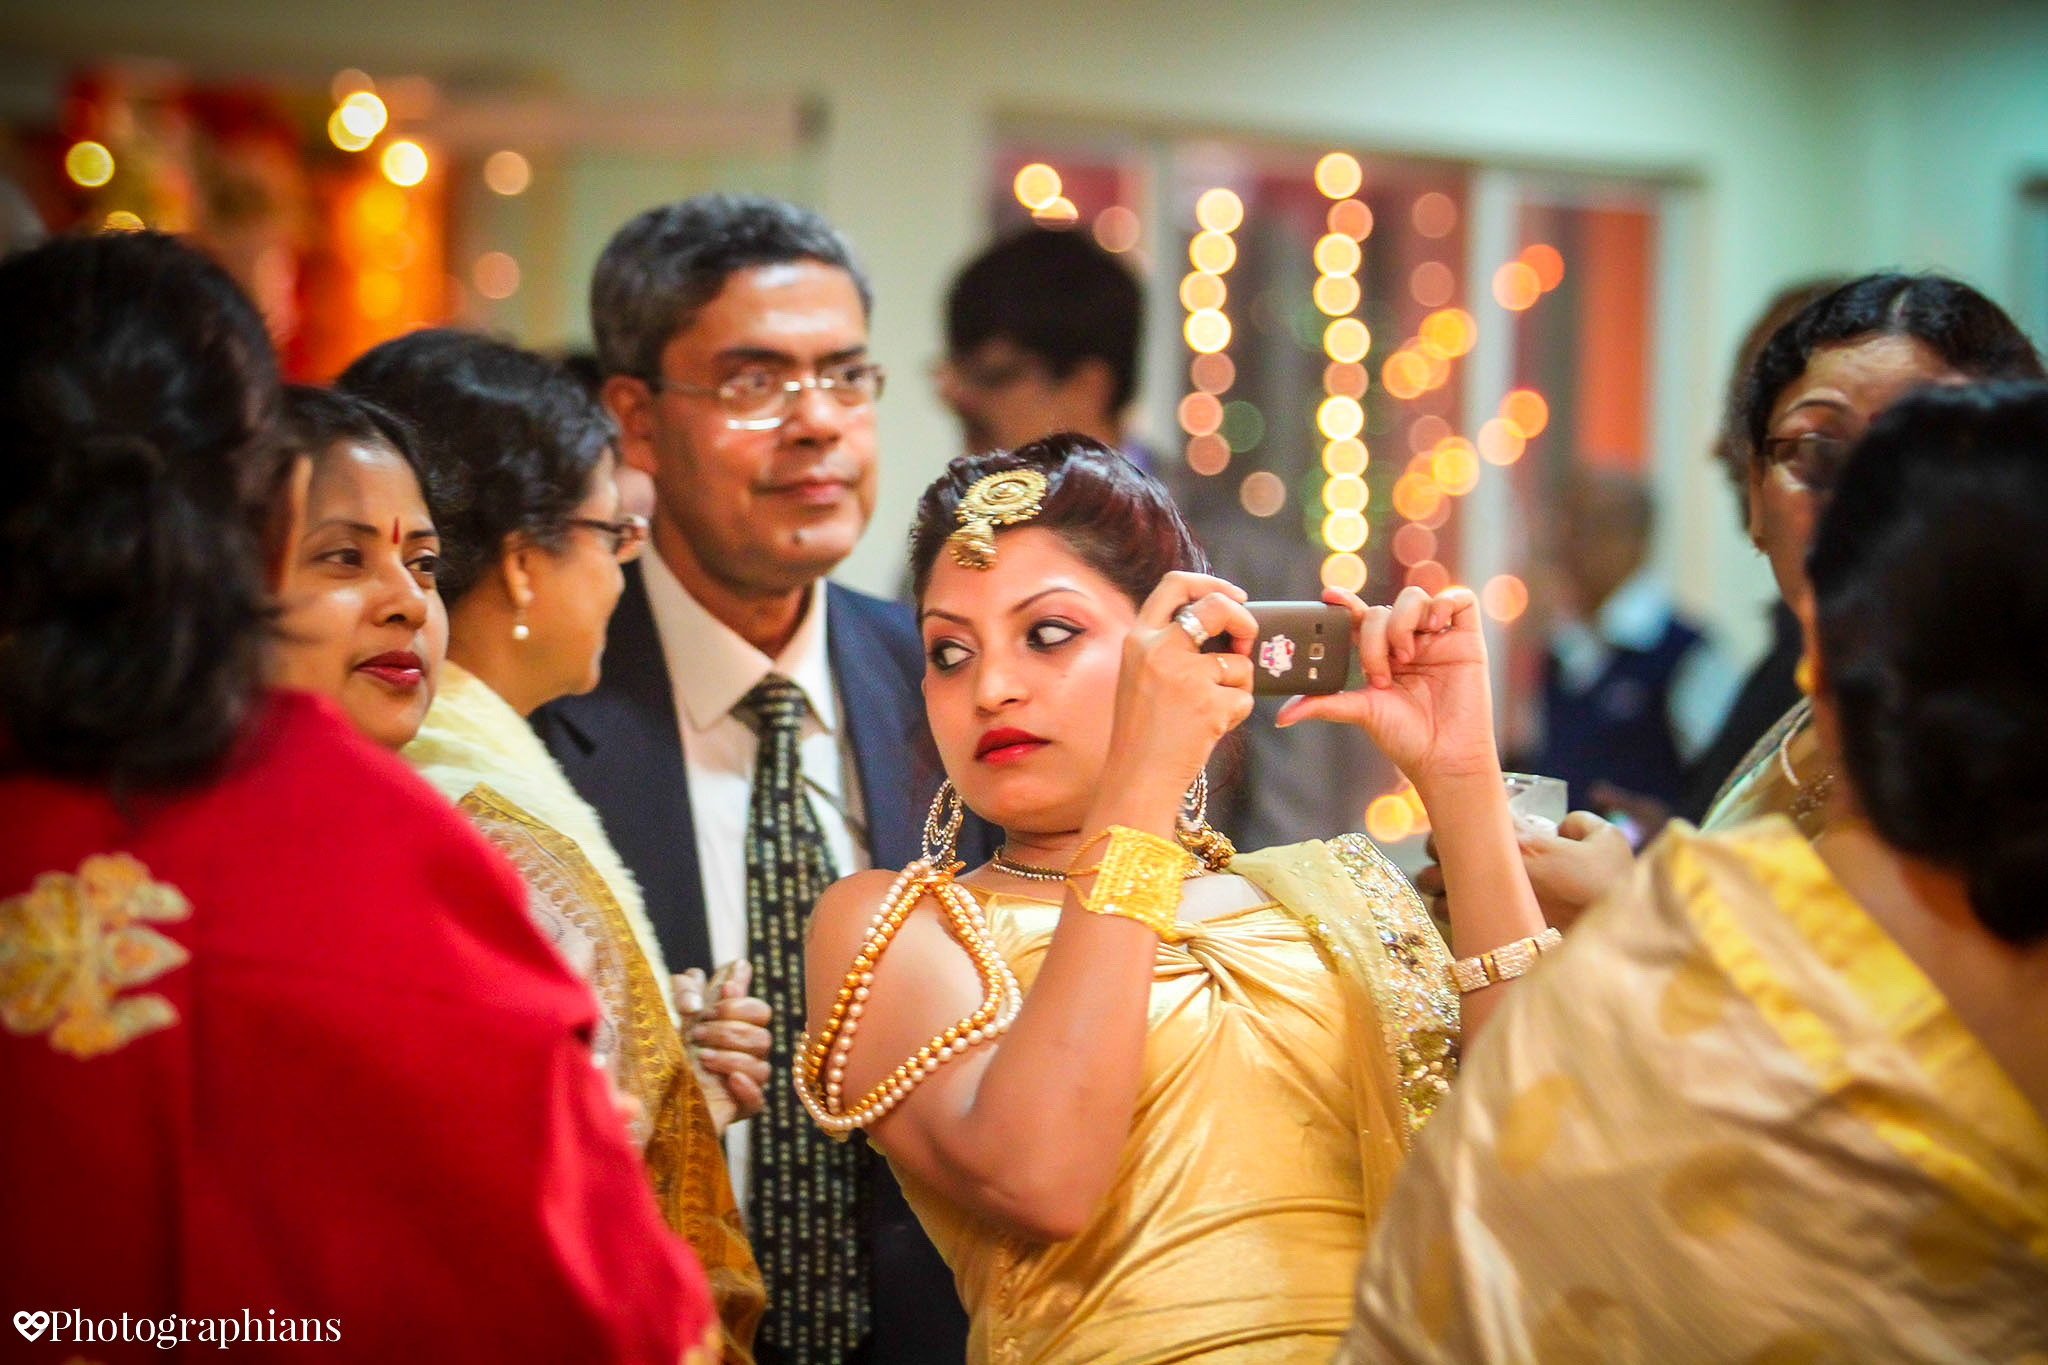 Photographians_Indian_Wedding_Durgapur_064